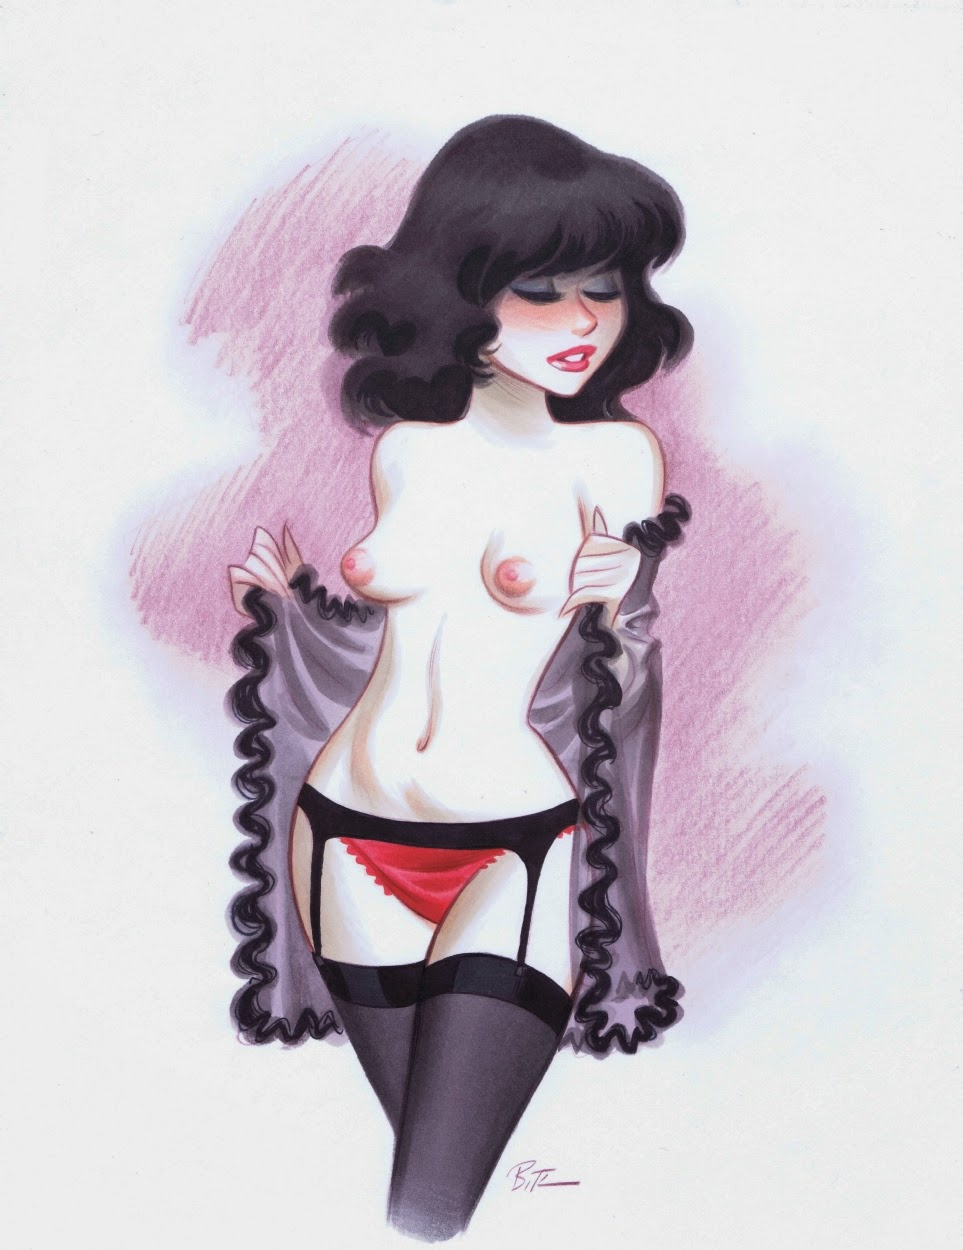 Bruce Timm - Sexy Girls Fine Arts-9995